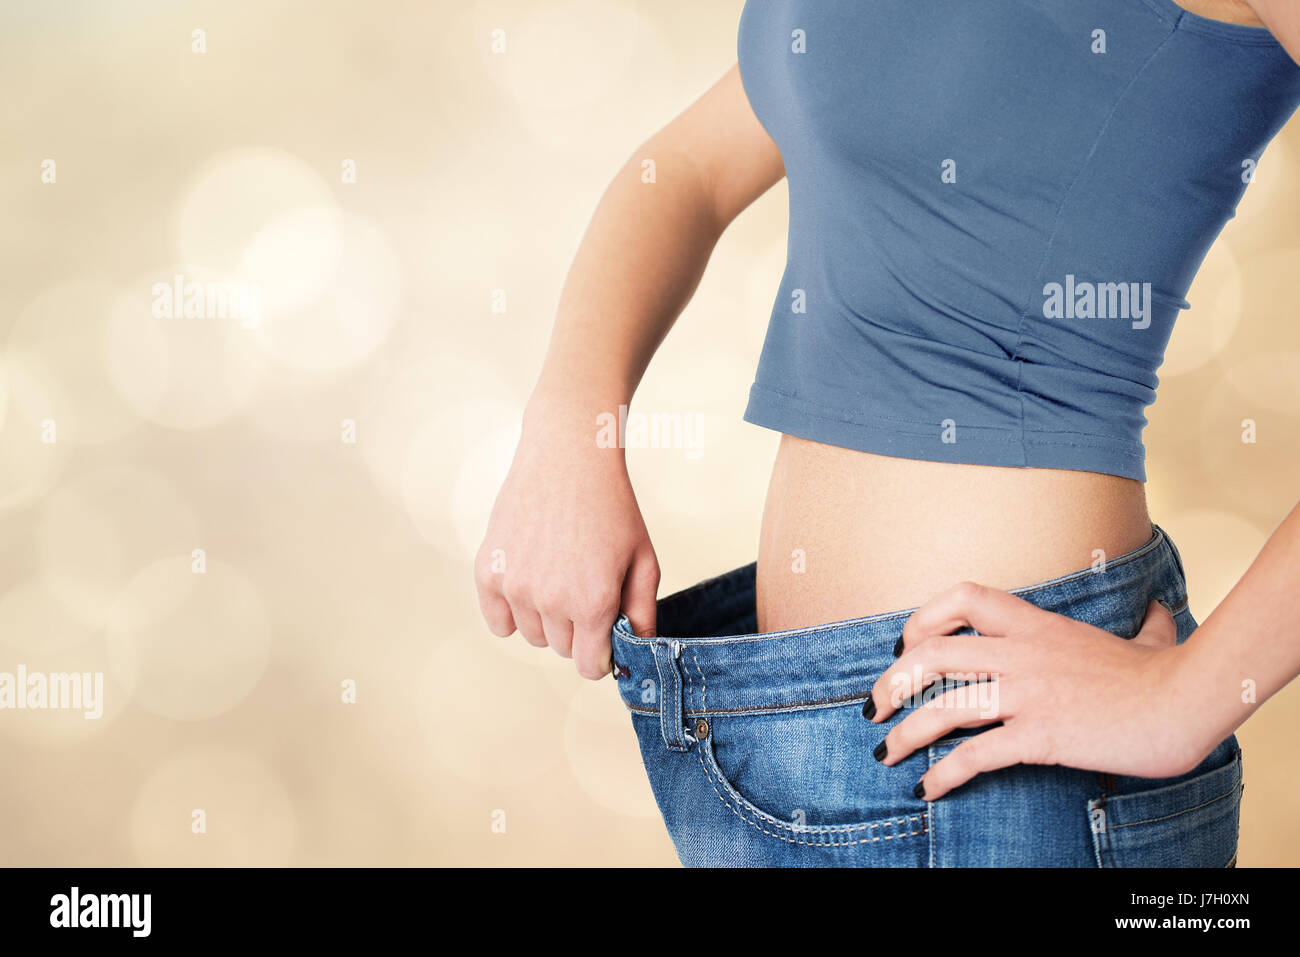 Thin woman in big pants - weight loss concepts - Stock Image